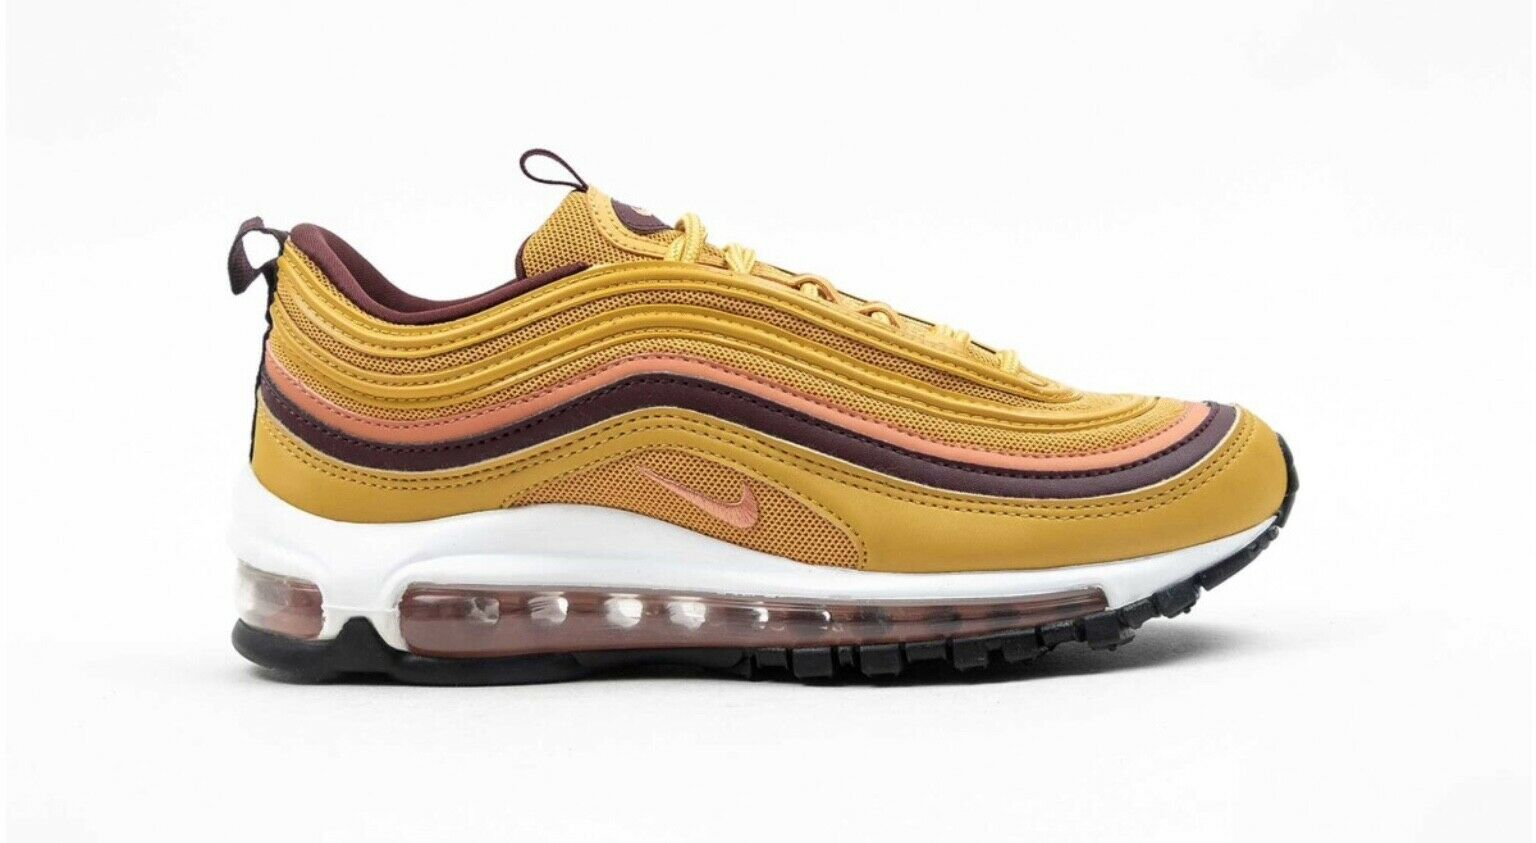 Women's Nike Air Max 97 Trainer 921733-700  UK5 EU38.5 US7.5